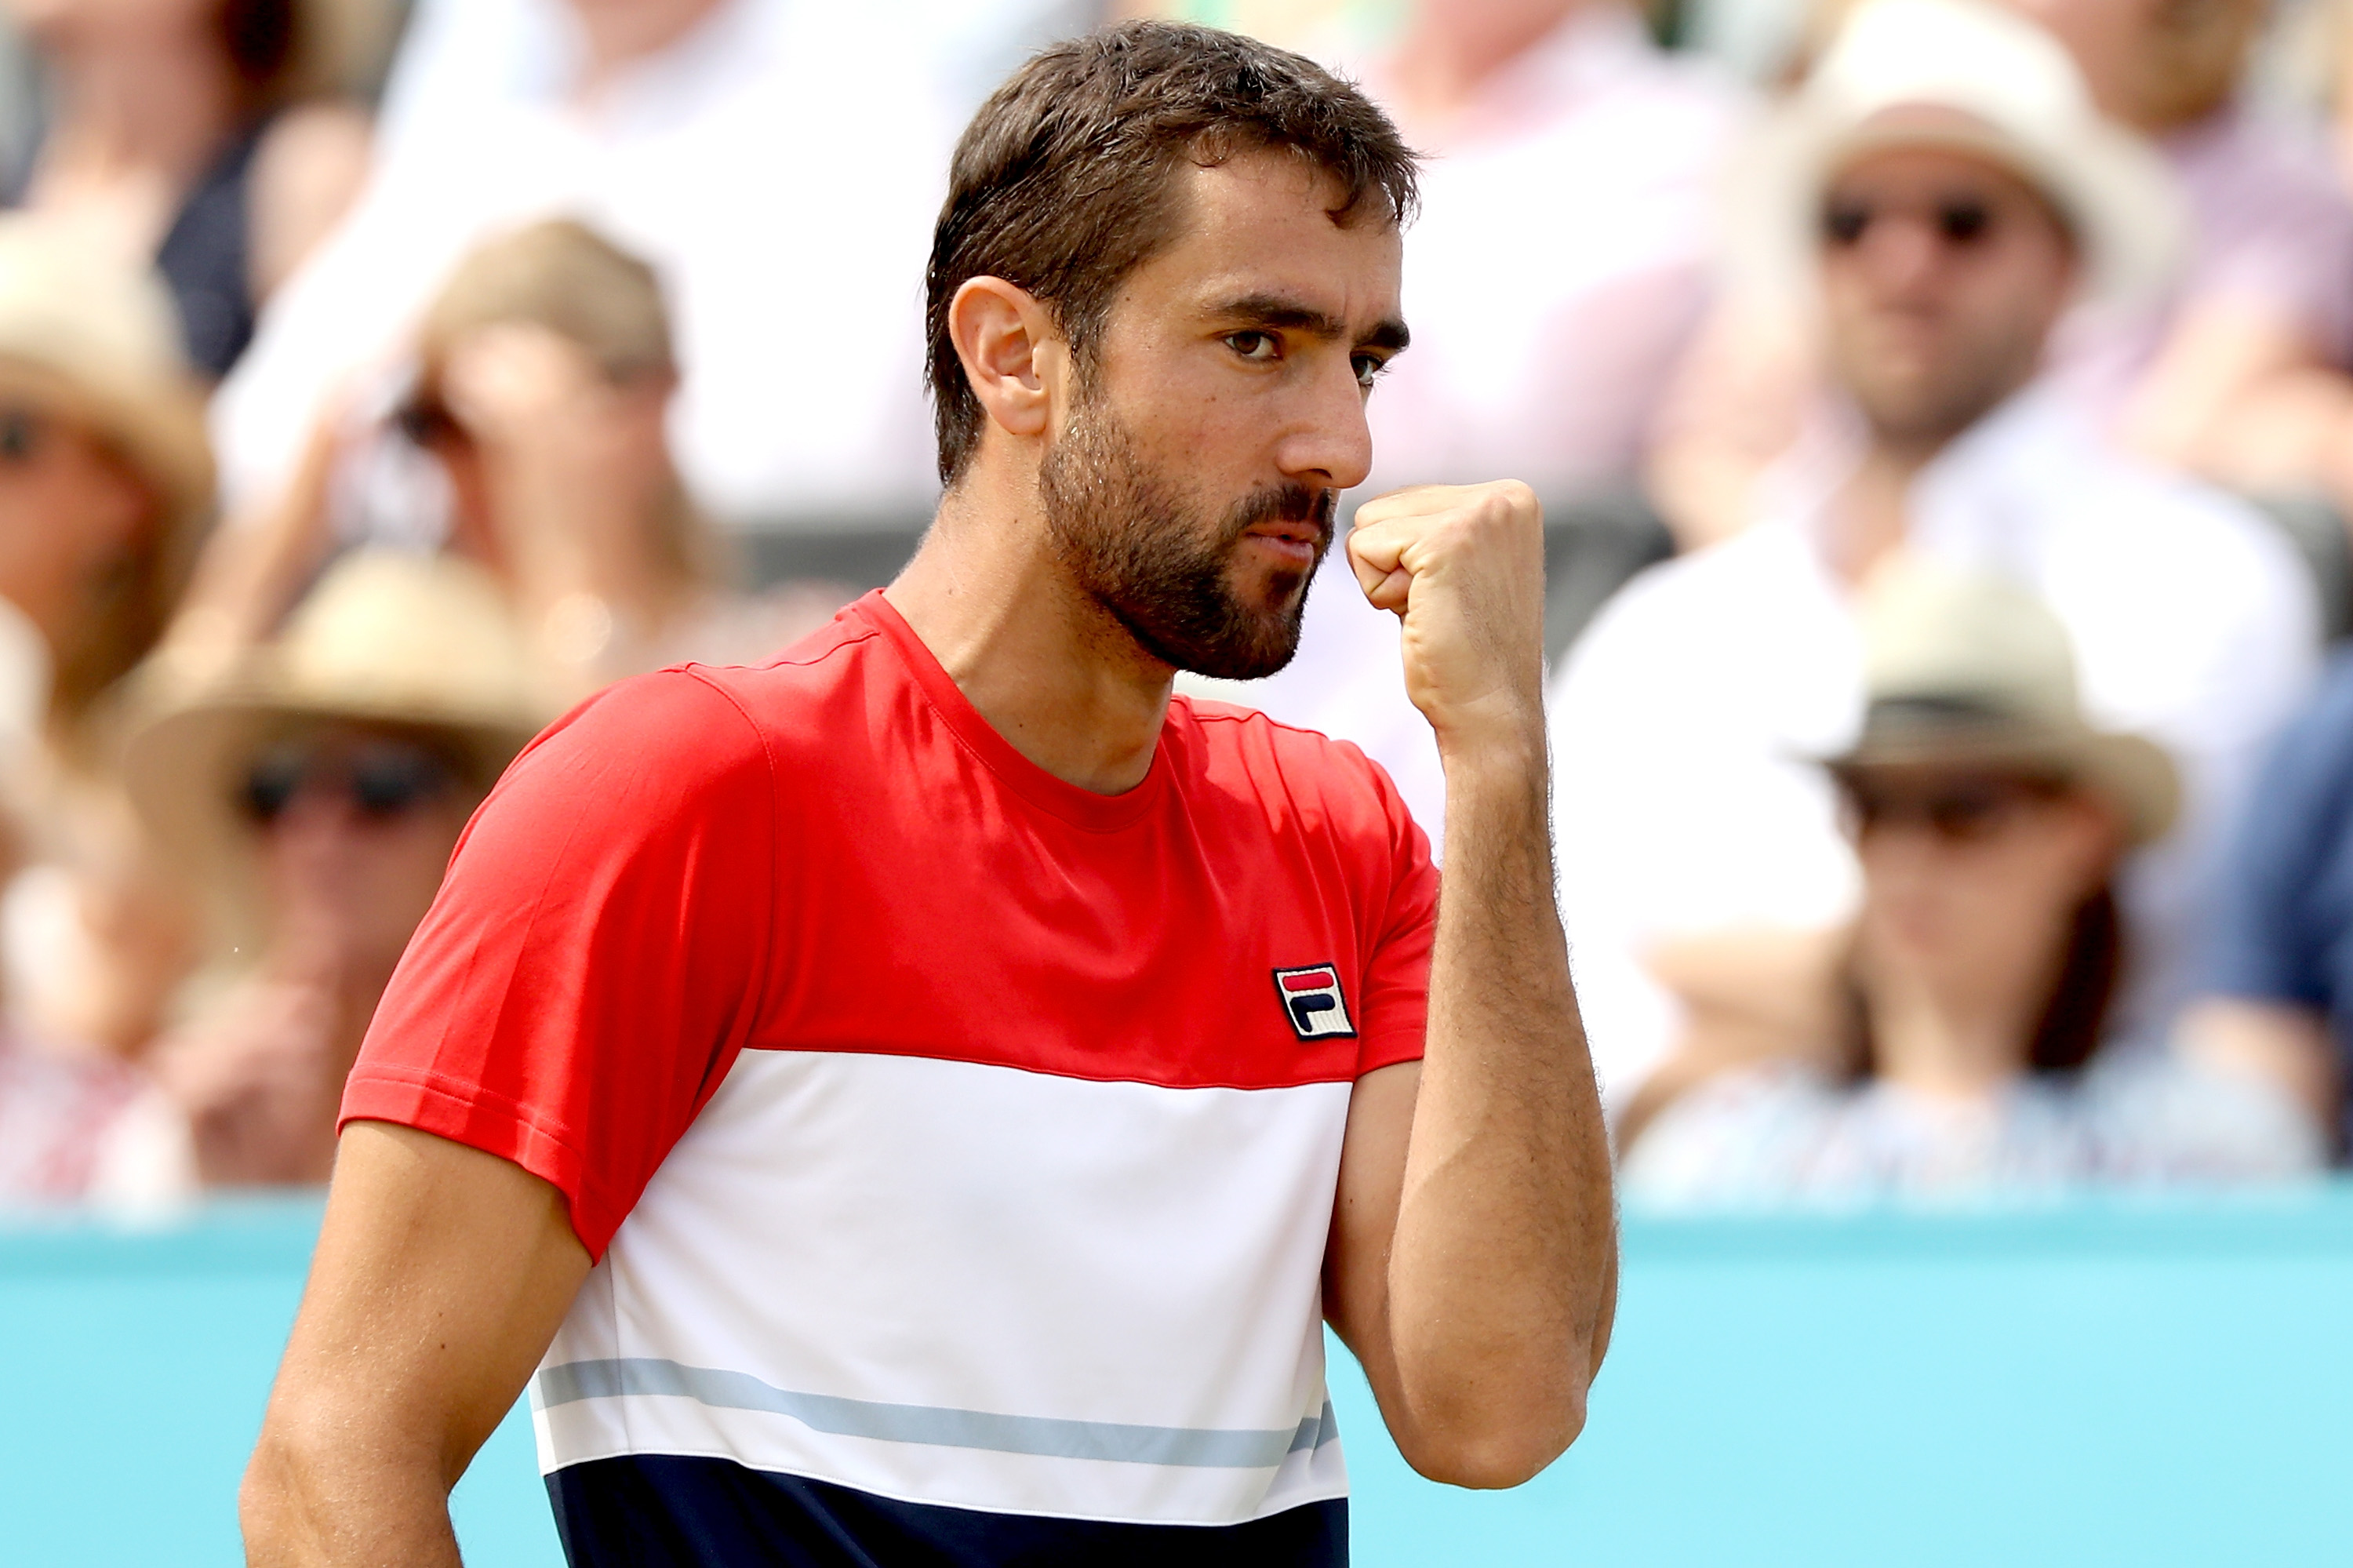 Marin Cilic secures a spot in the final after defeating Nick Kyrgios